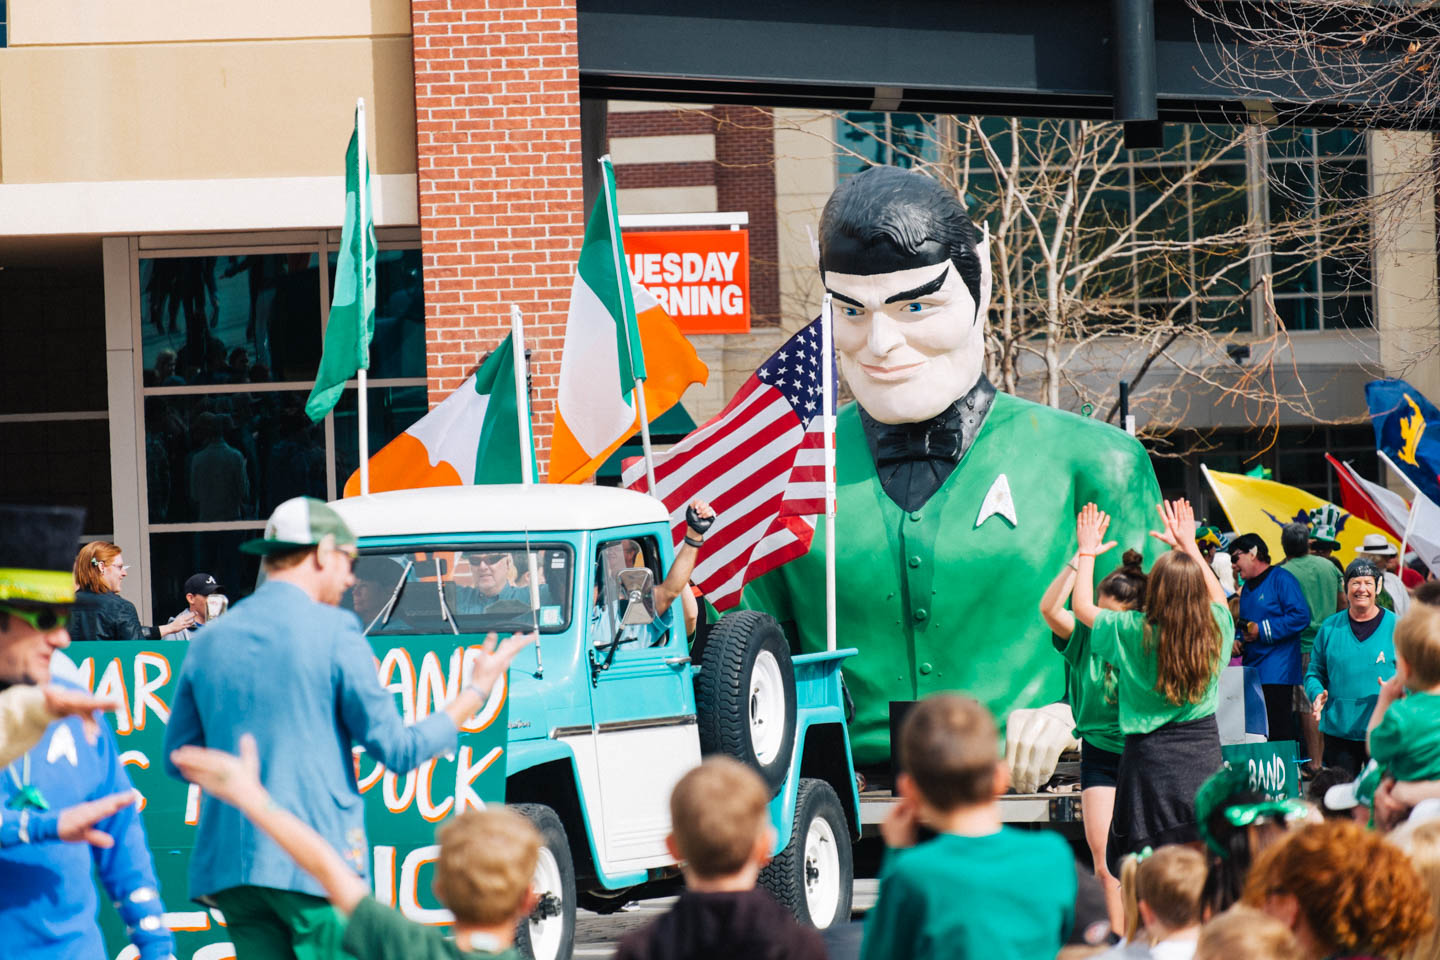 A tribute to Doctor Spock in the parade